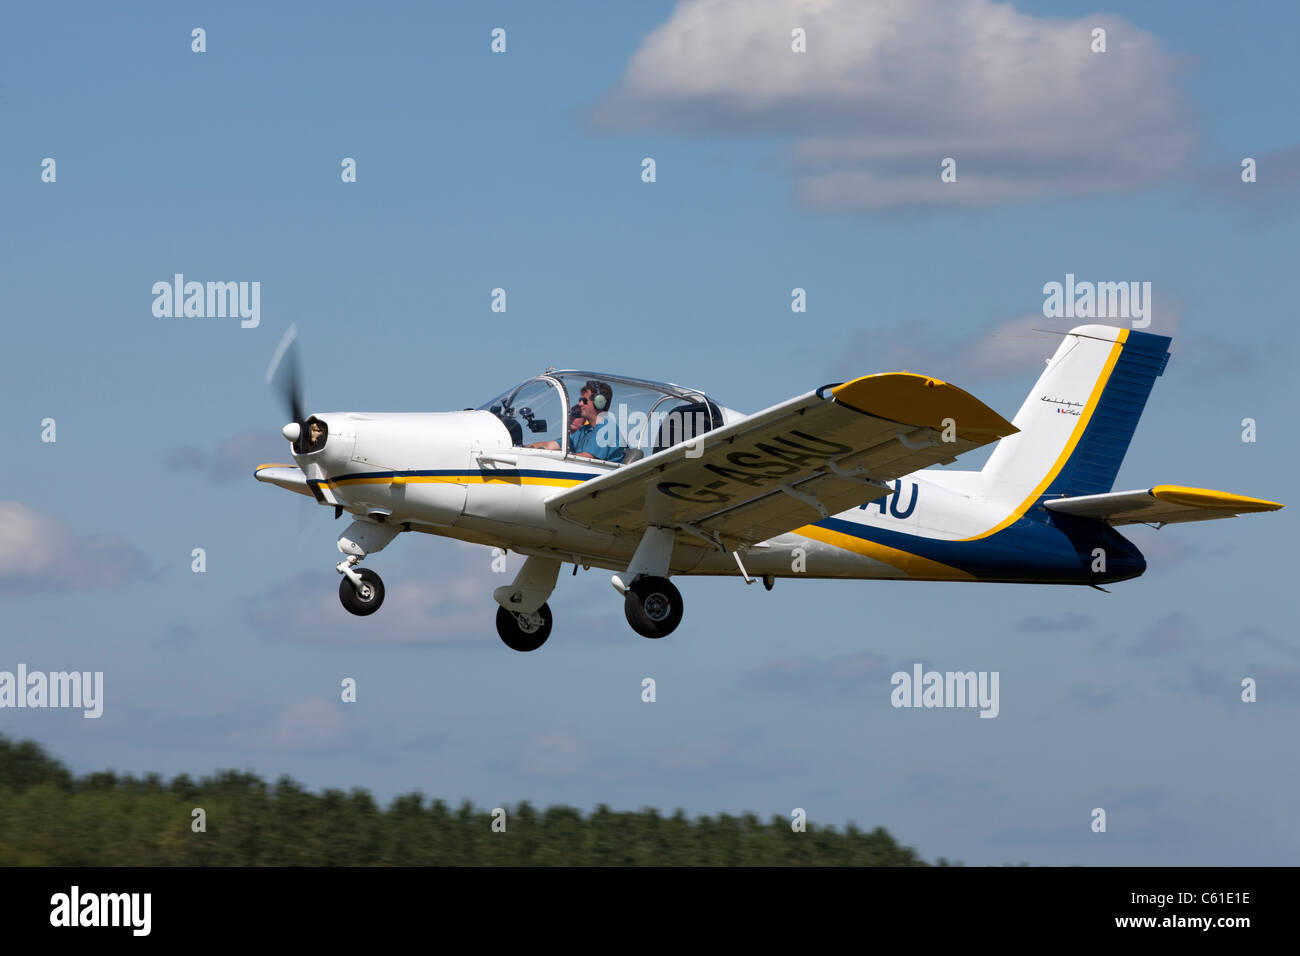 Morane Saulnier MS880B Rallye Club G-ASAU  in fliht taking-off - Stock Image